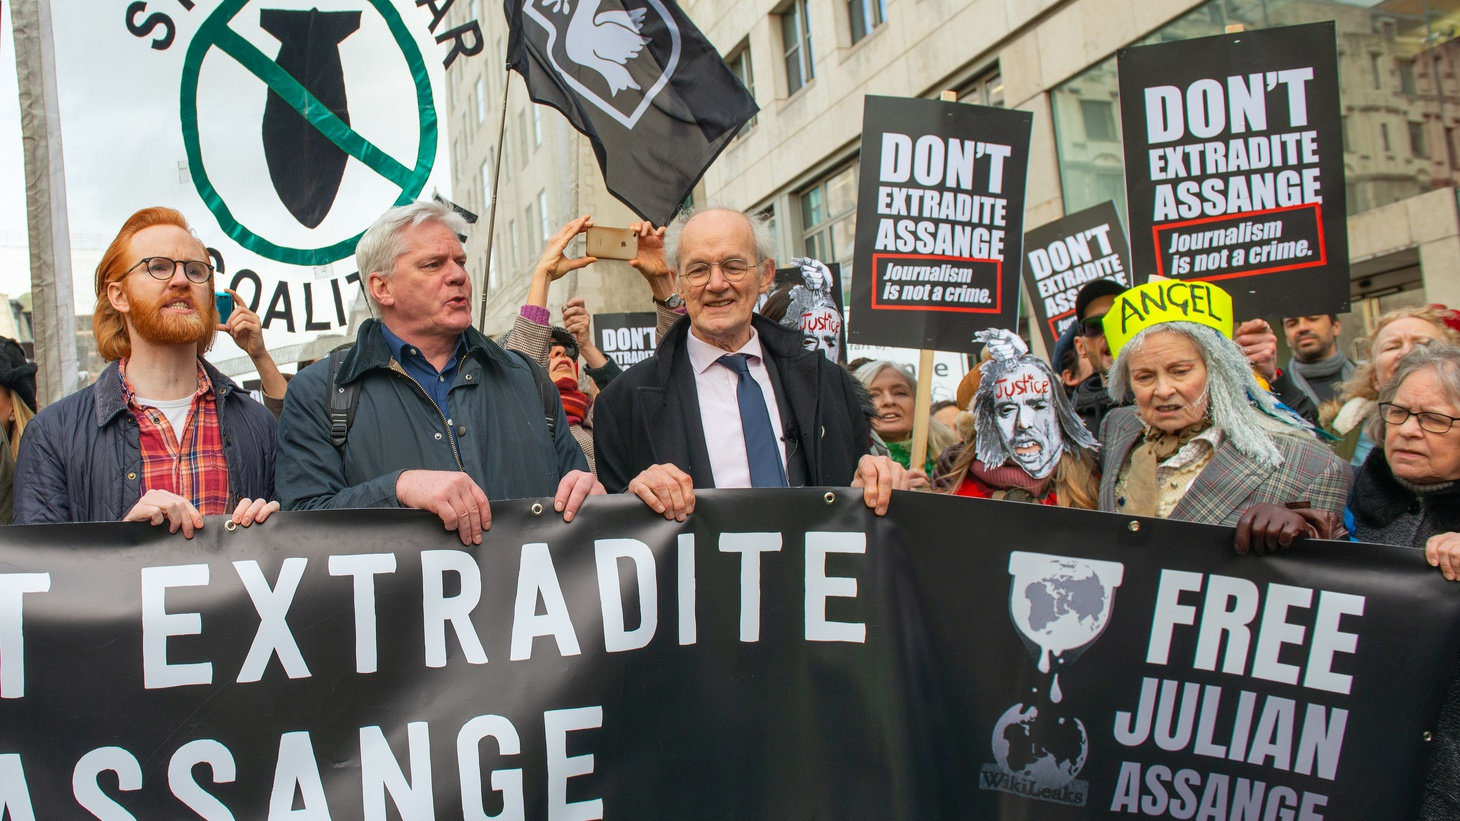 Father John Shipton (center), in protest of WikiLeaks Julian Assange's extradition to the USA.